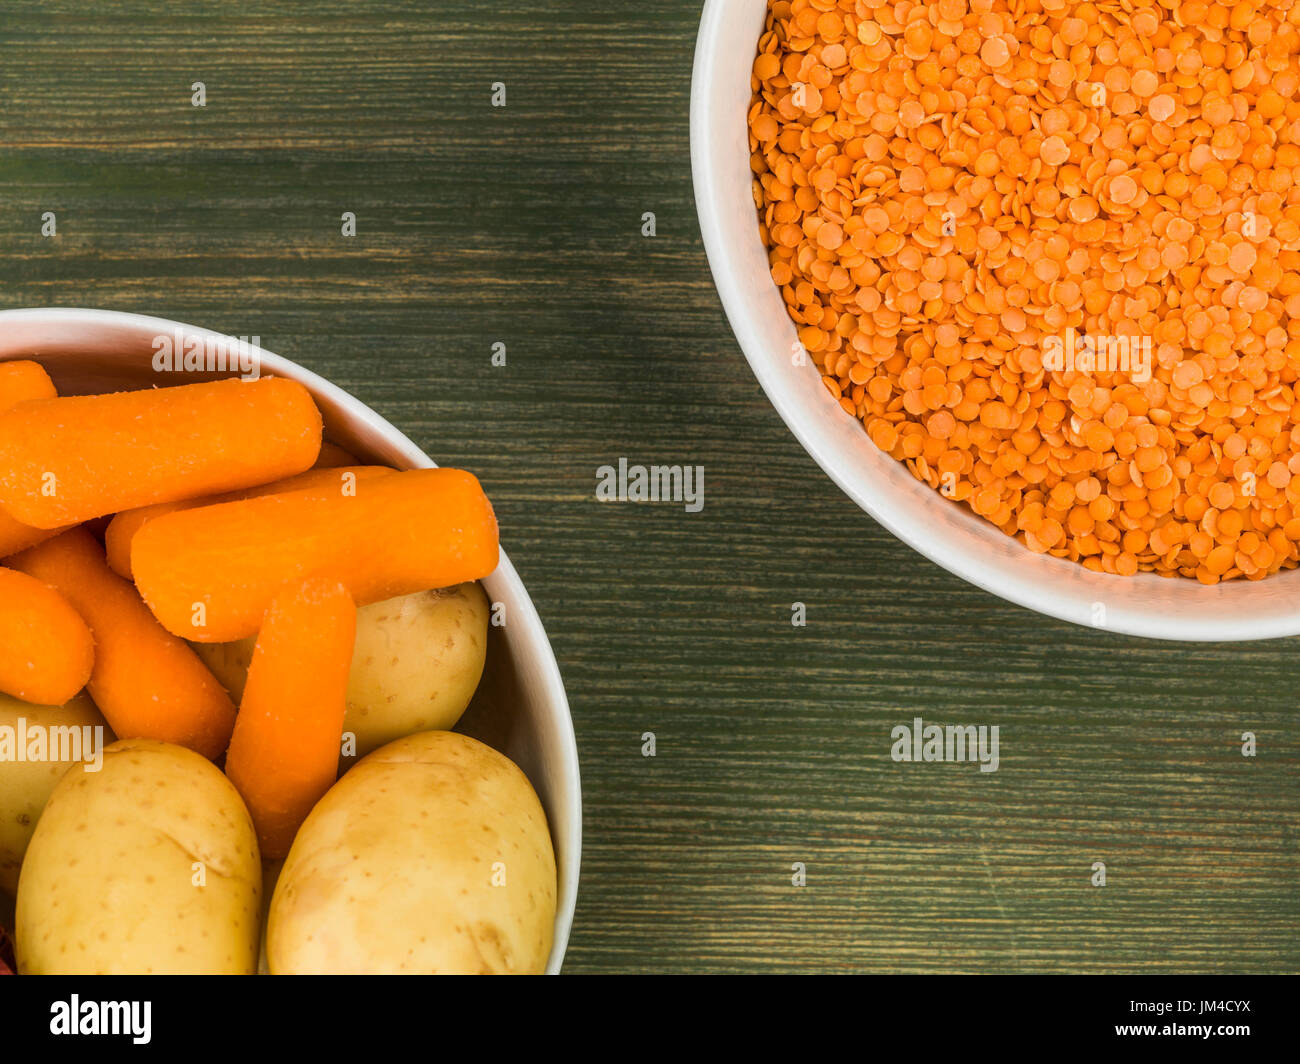 Bowl of Dry Uncooked Red Lentils Against a Green Wooden Background - Stock Image